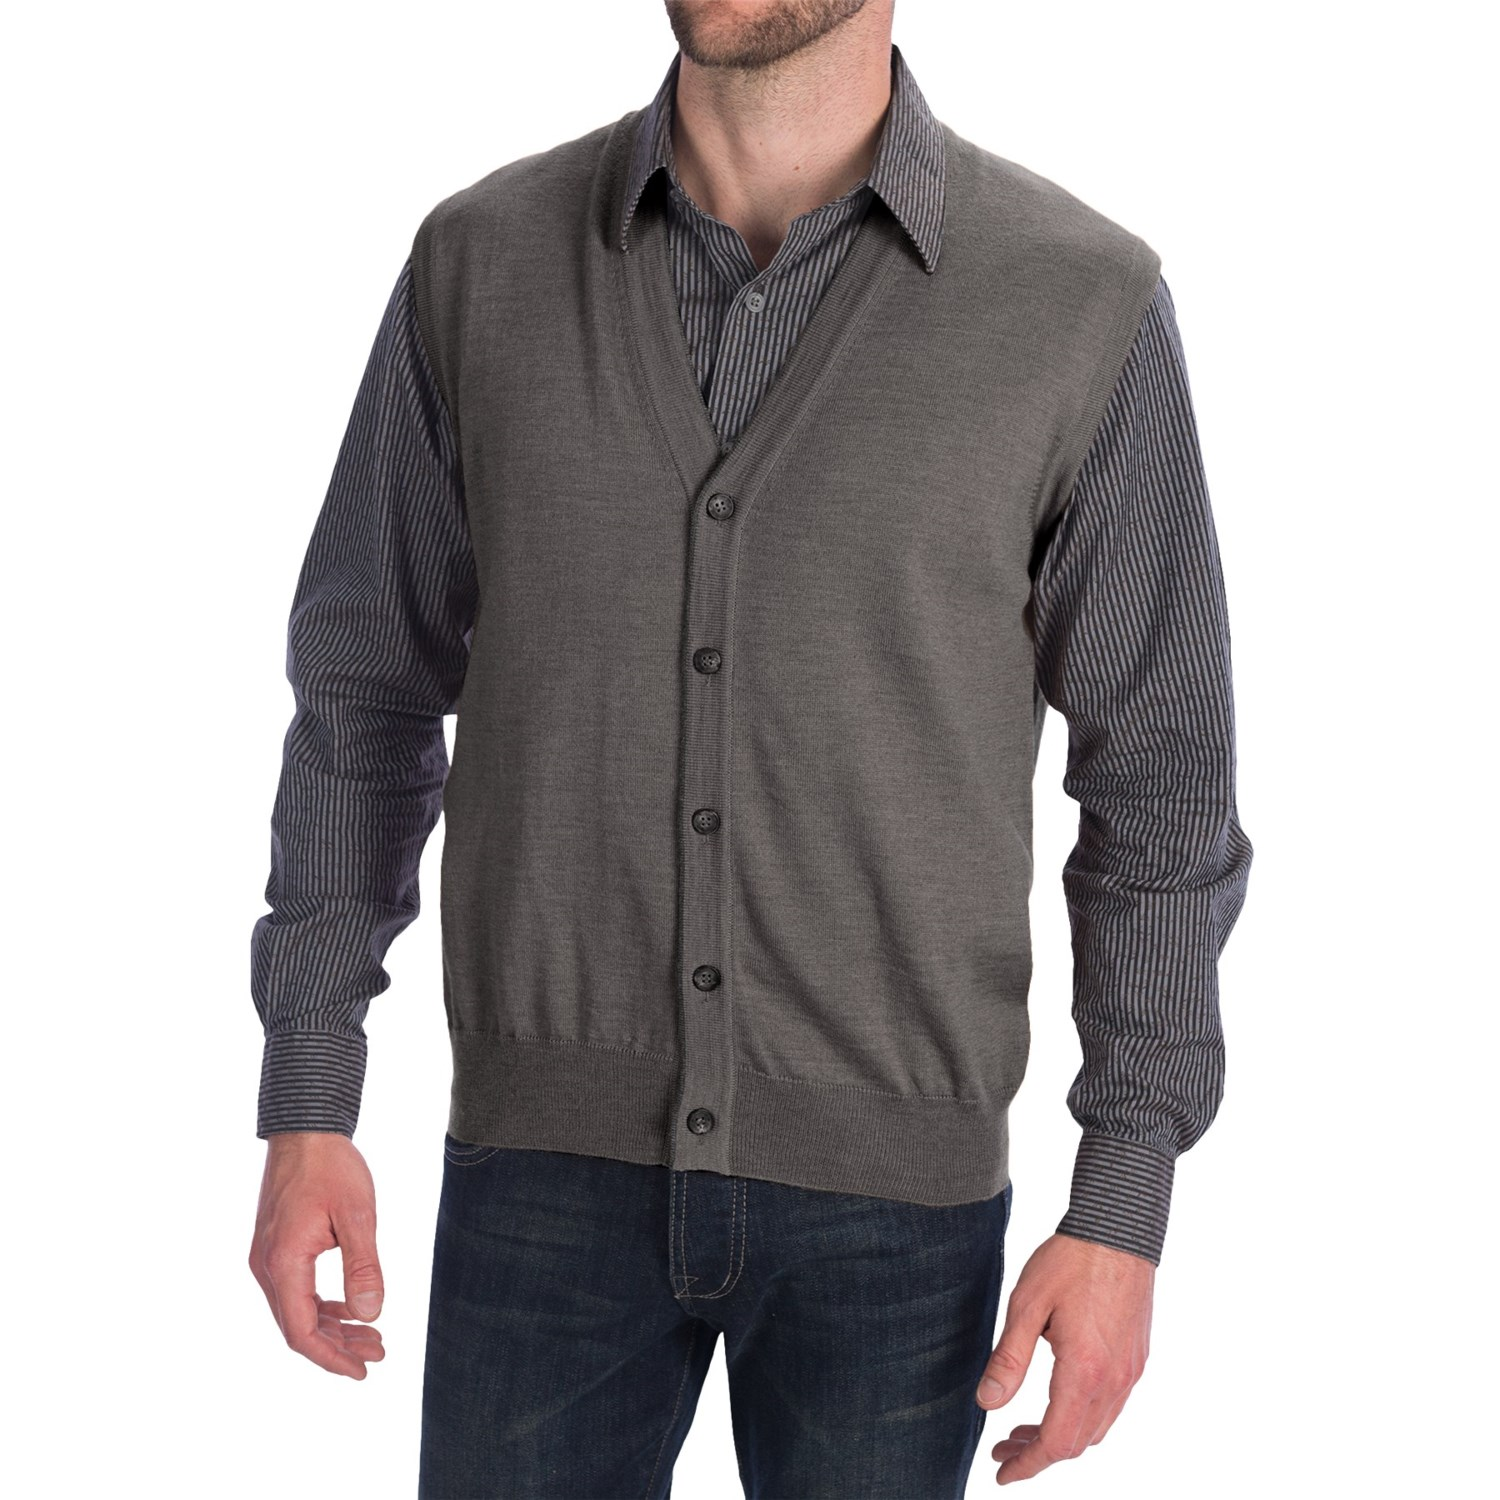 Shop eBay for great deals on Merino Wool Vest Sweaters for Men. You'll find new or used products in Merino Wool Vest Sweaters for Men on eBay. Free shipping on selected items.